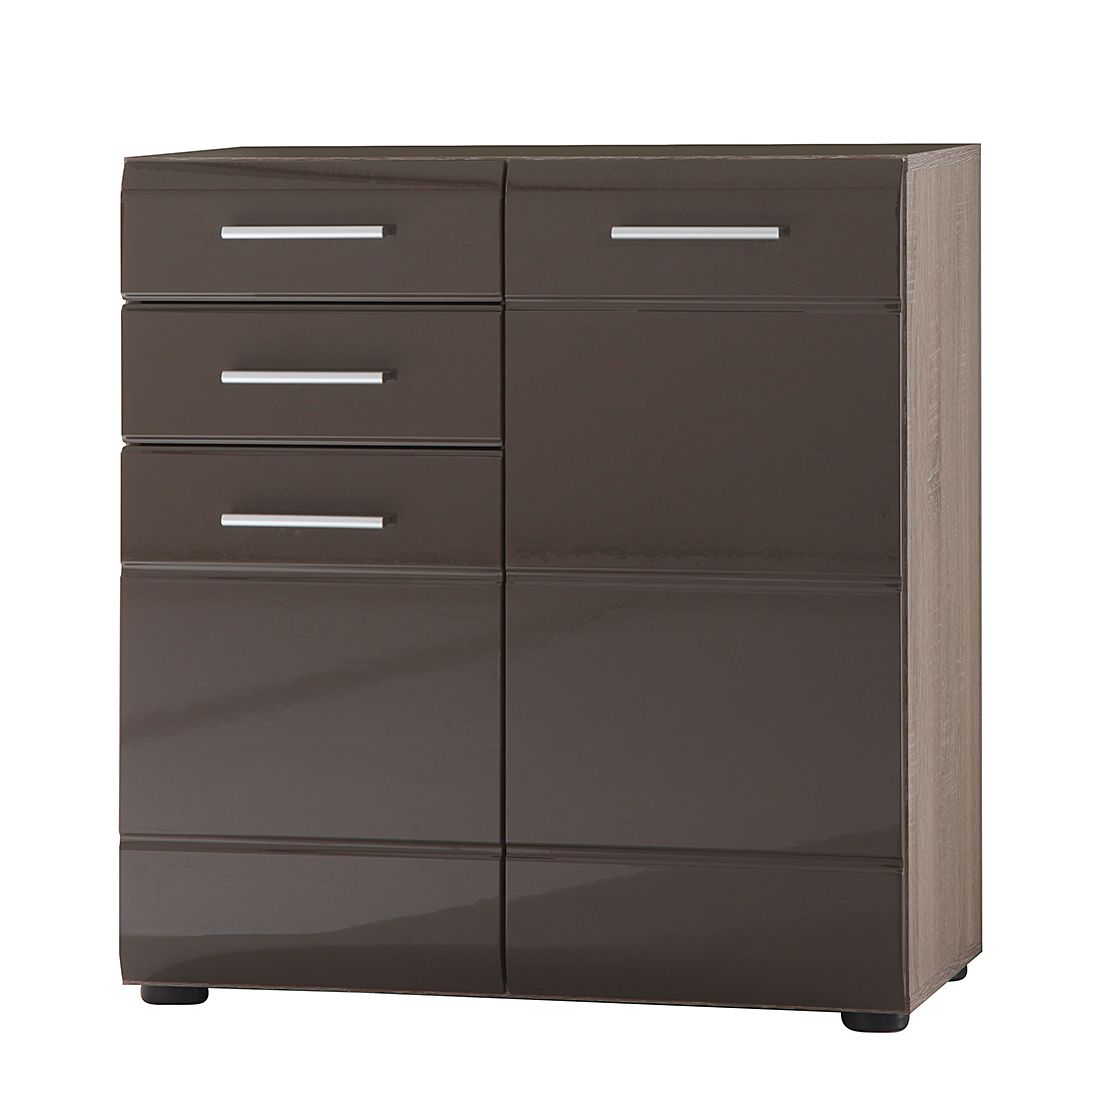 kommode storm iii eiche s gerau dunkel dekor blackbrown hochglanz. Black Bedroom Furniture Sets. Home Design Ideas